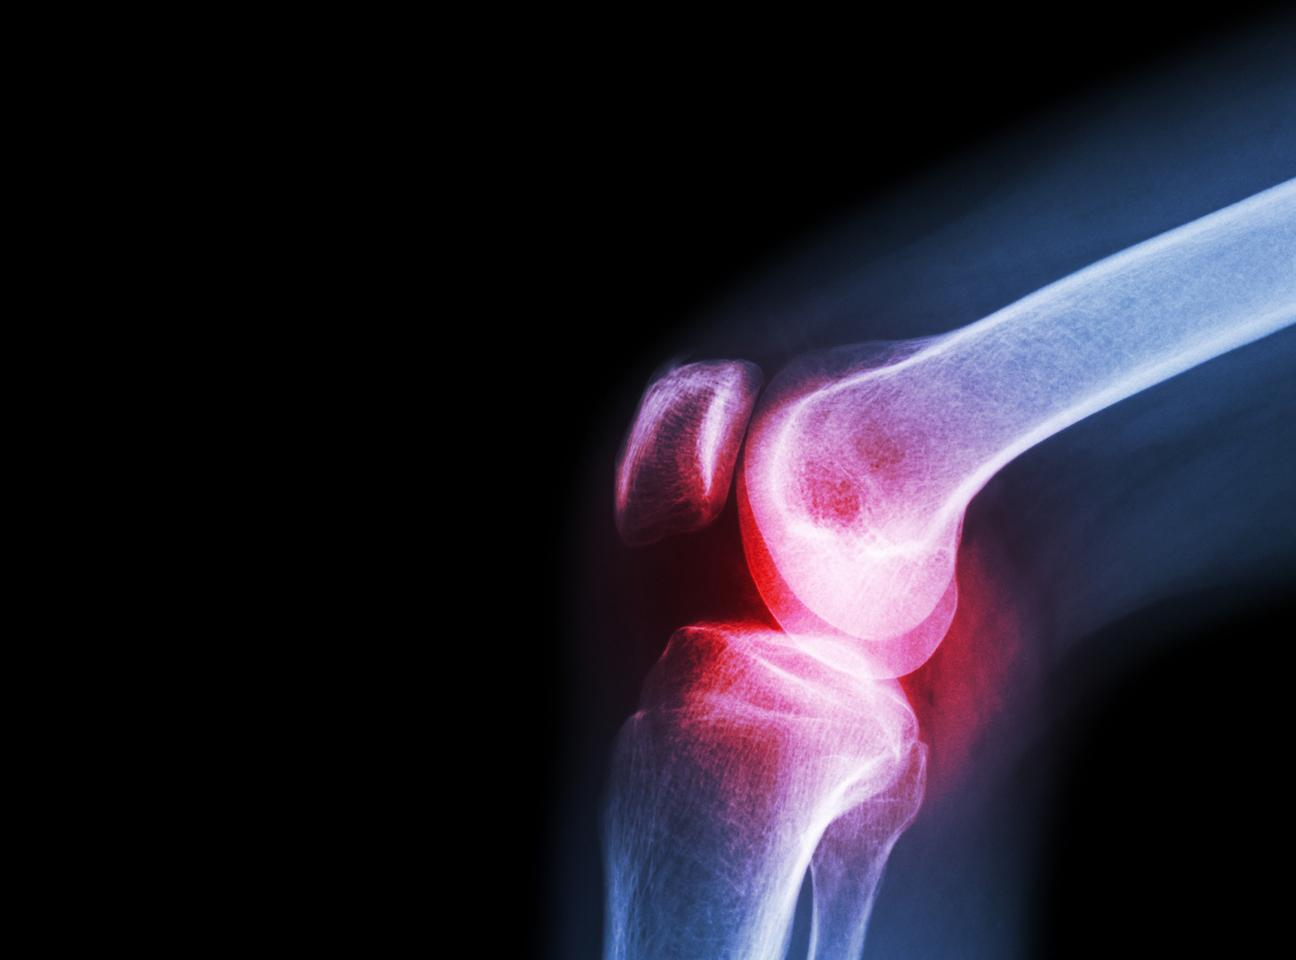 Conditions like osteoarthritis are characterized by the deterioration of cartilage in joints, but a new technique involving a cryogel scaffold to assist implanted stem cells could offer a way to reverse the process